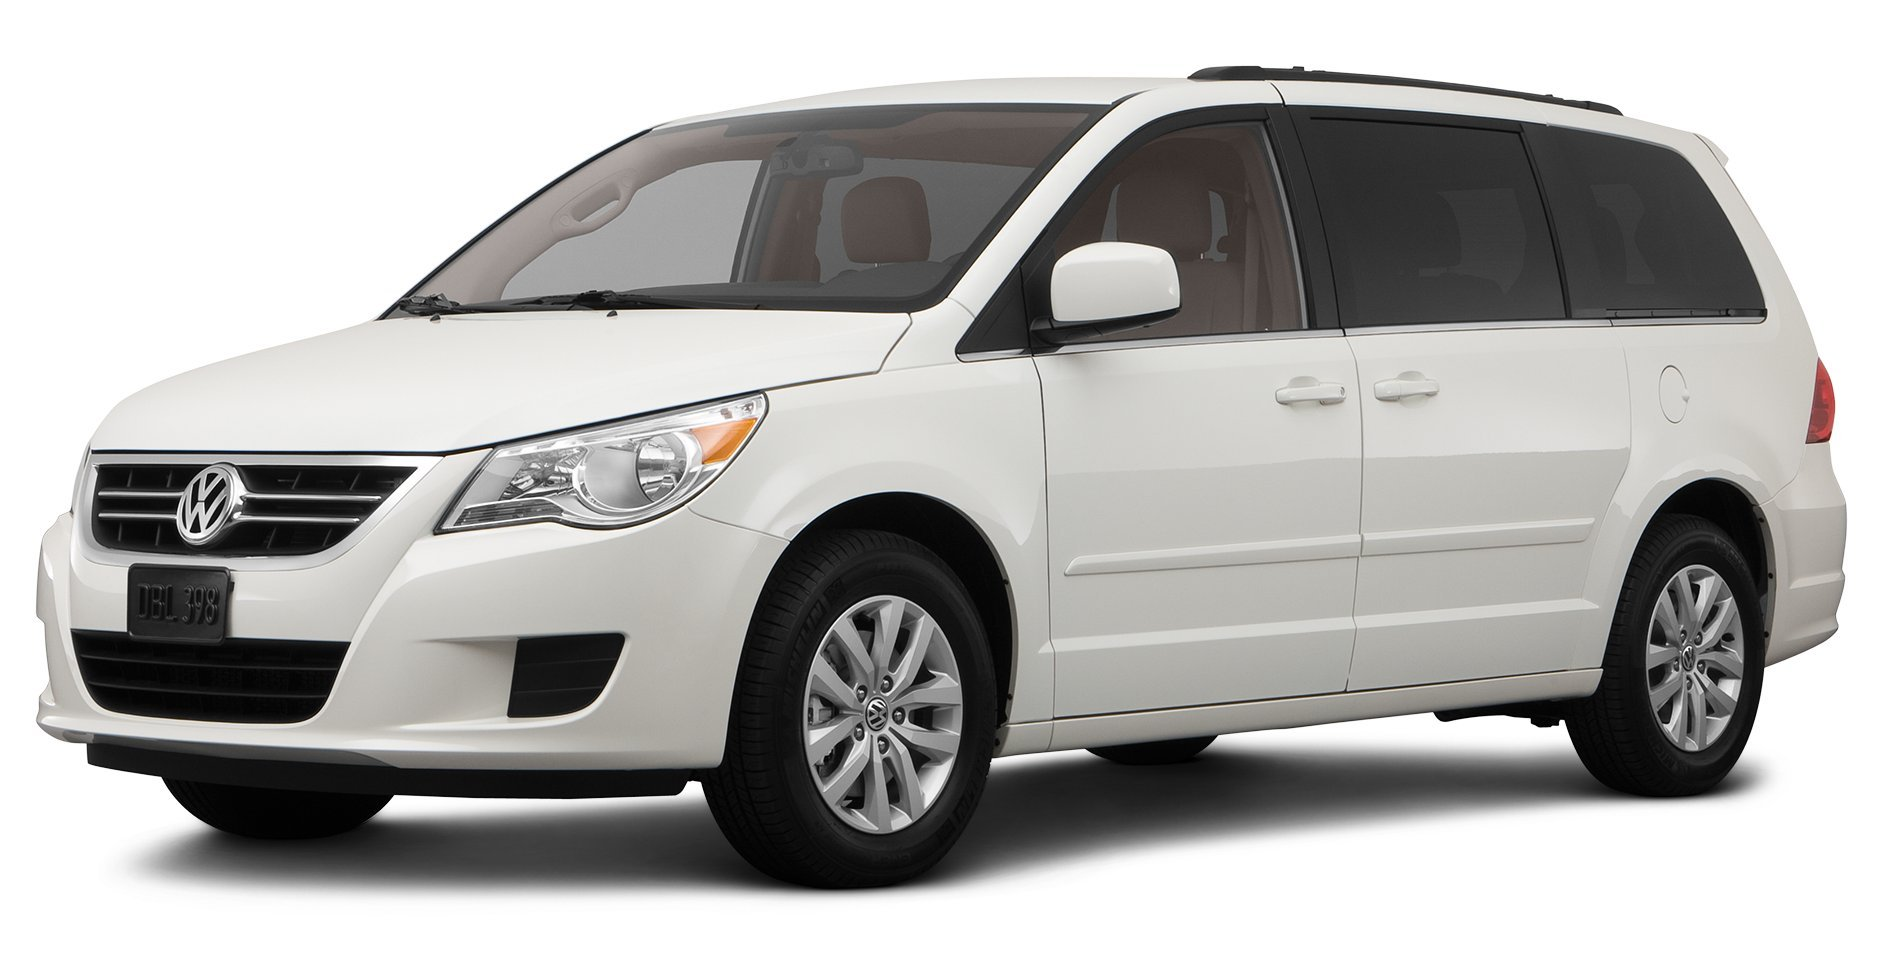 2012 volkswagen routan reviews images and. Black Bedroom Furniture Sets. Home Design Ideas